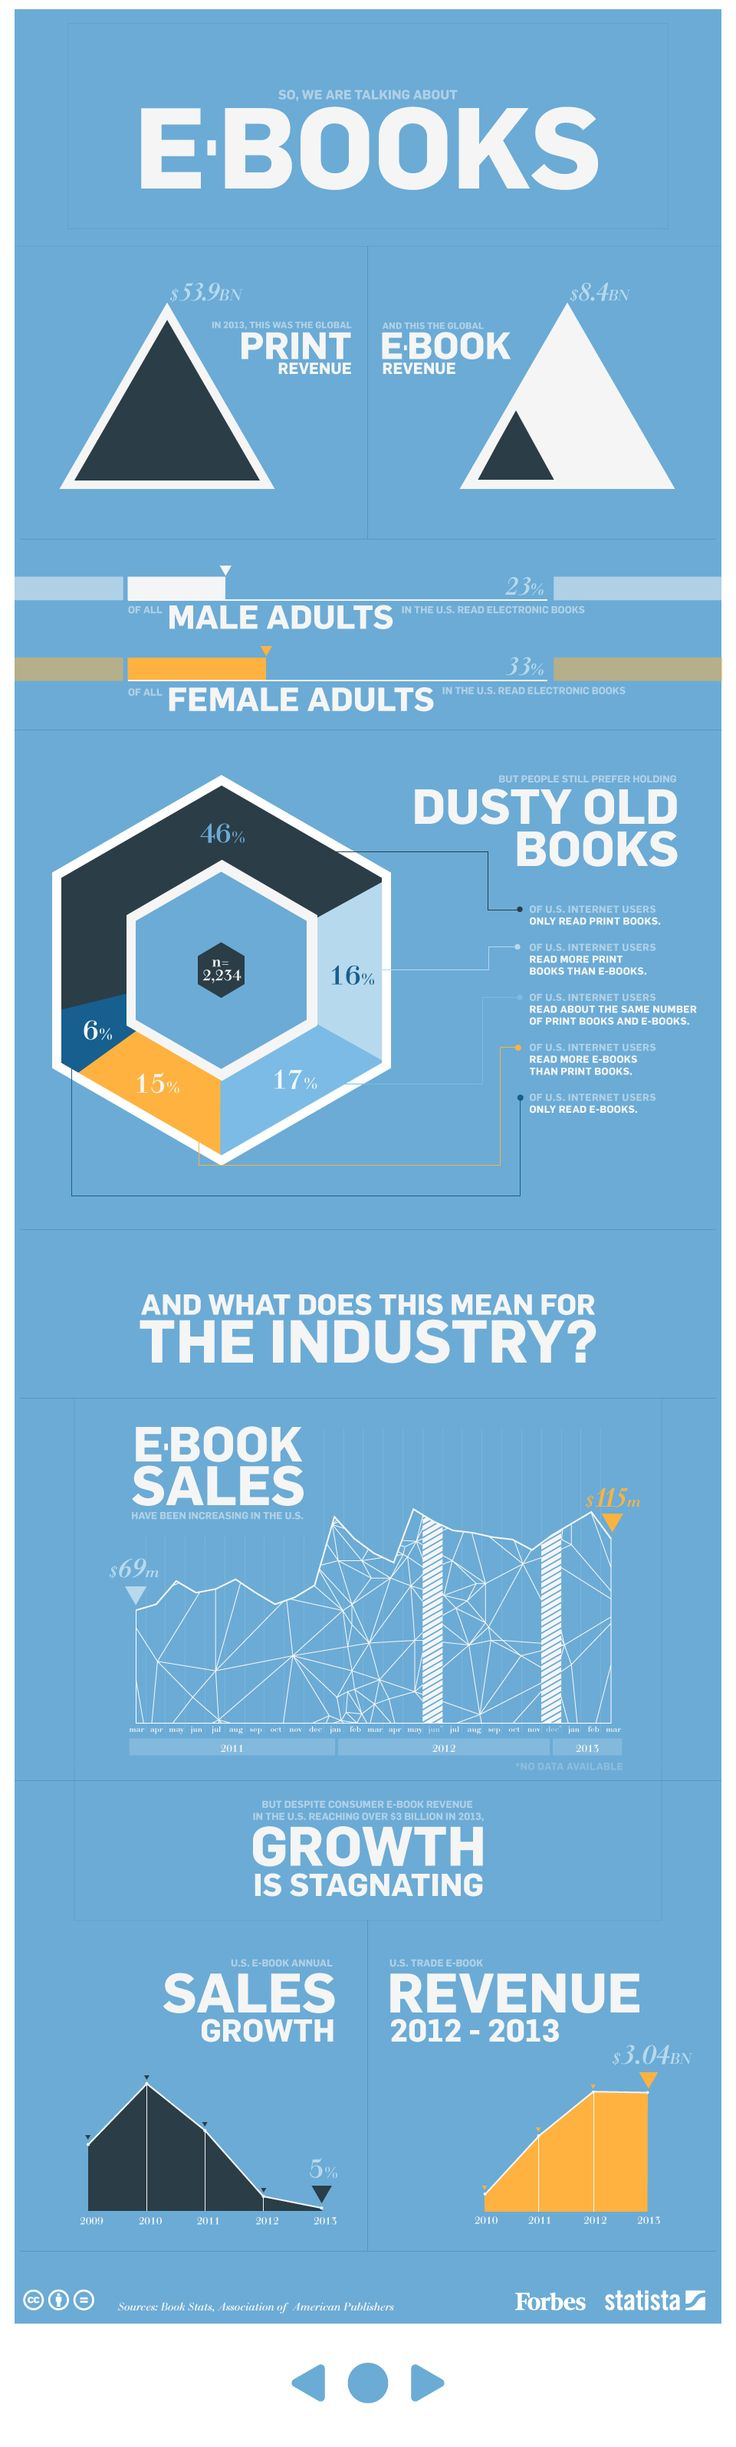 32 best eblida european bureau of library information and do readers really prefer their dusty old paperbacks to e books the e book industry by the numbers infographic fandeluxe Choice Image